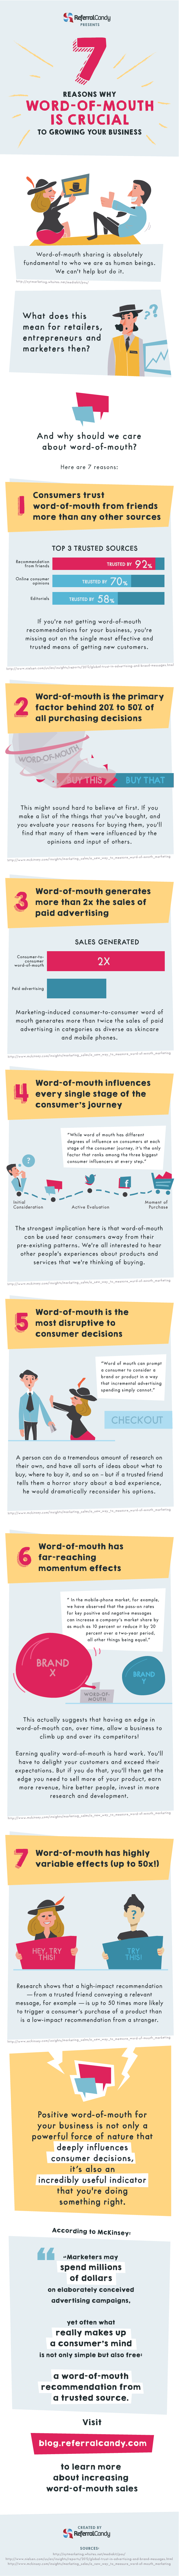 7 Reasons Why Word-Of-Mouth is Crucial in Growing Your Business [Infographic]